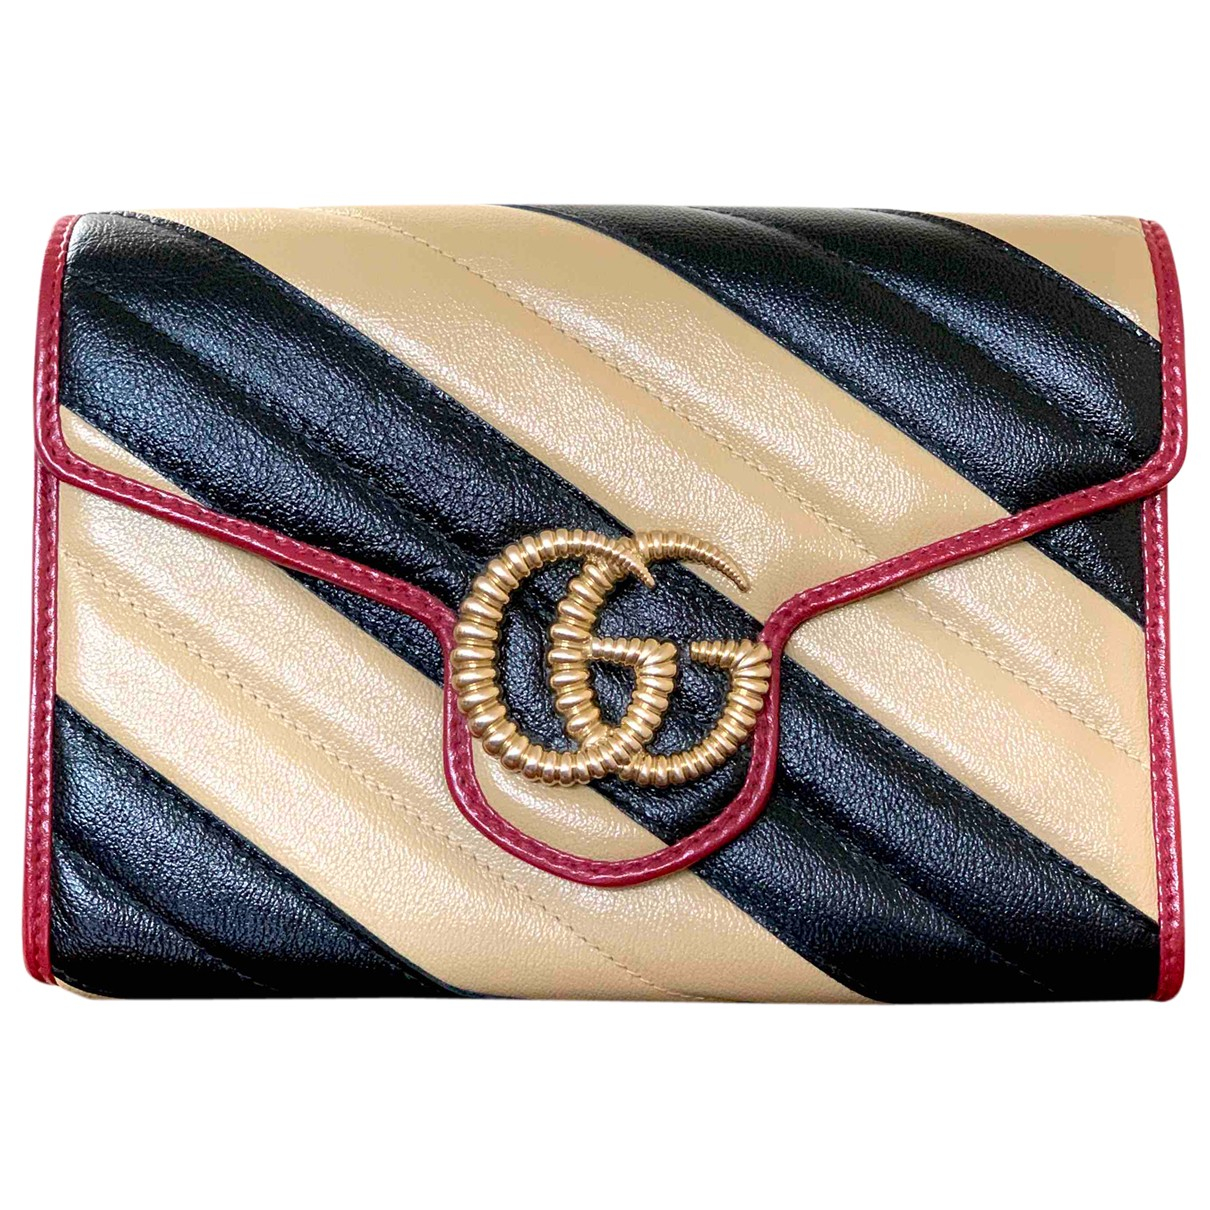 Gucci Marmont Leather handbag for Women N